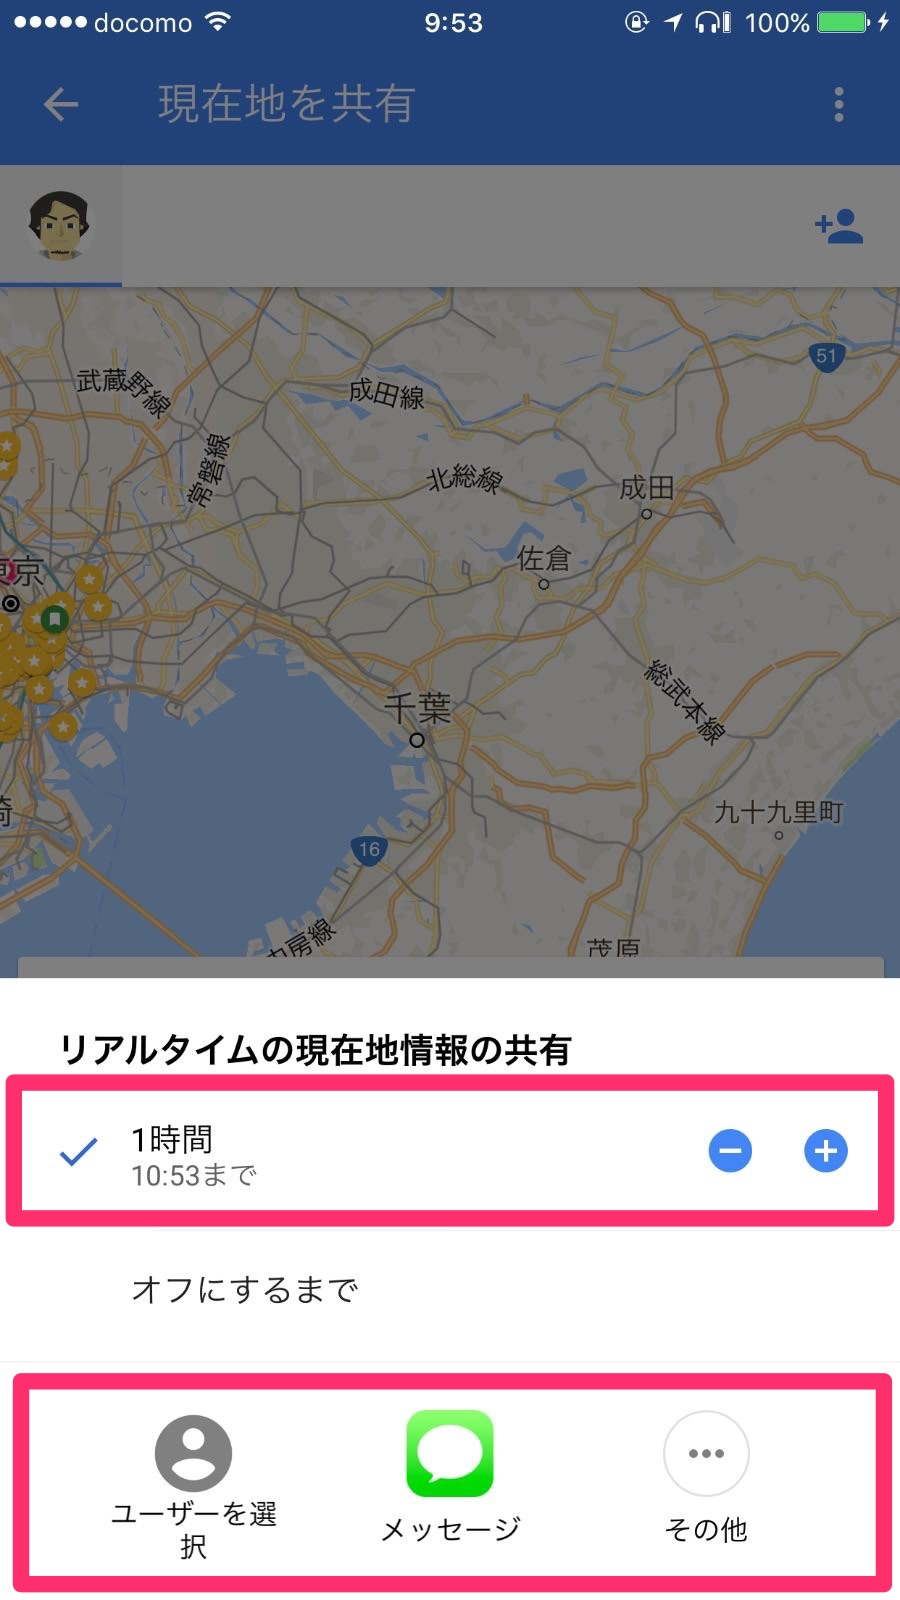 Google map location share 8555